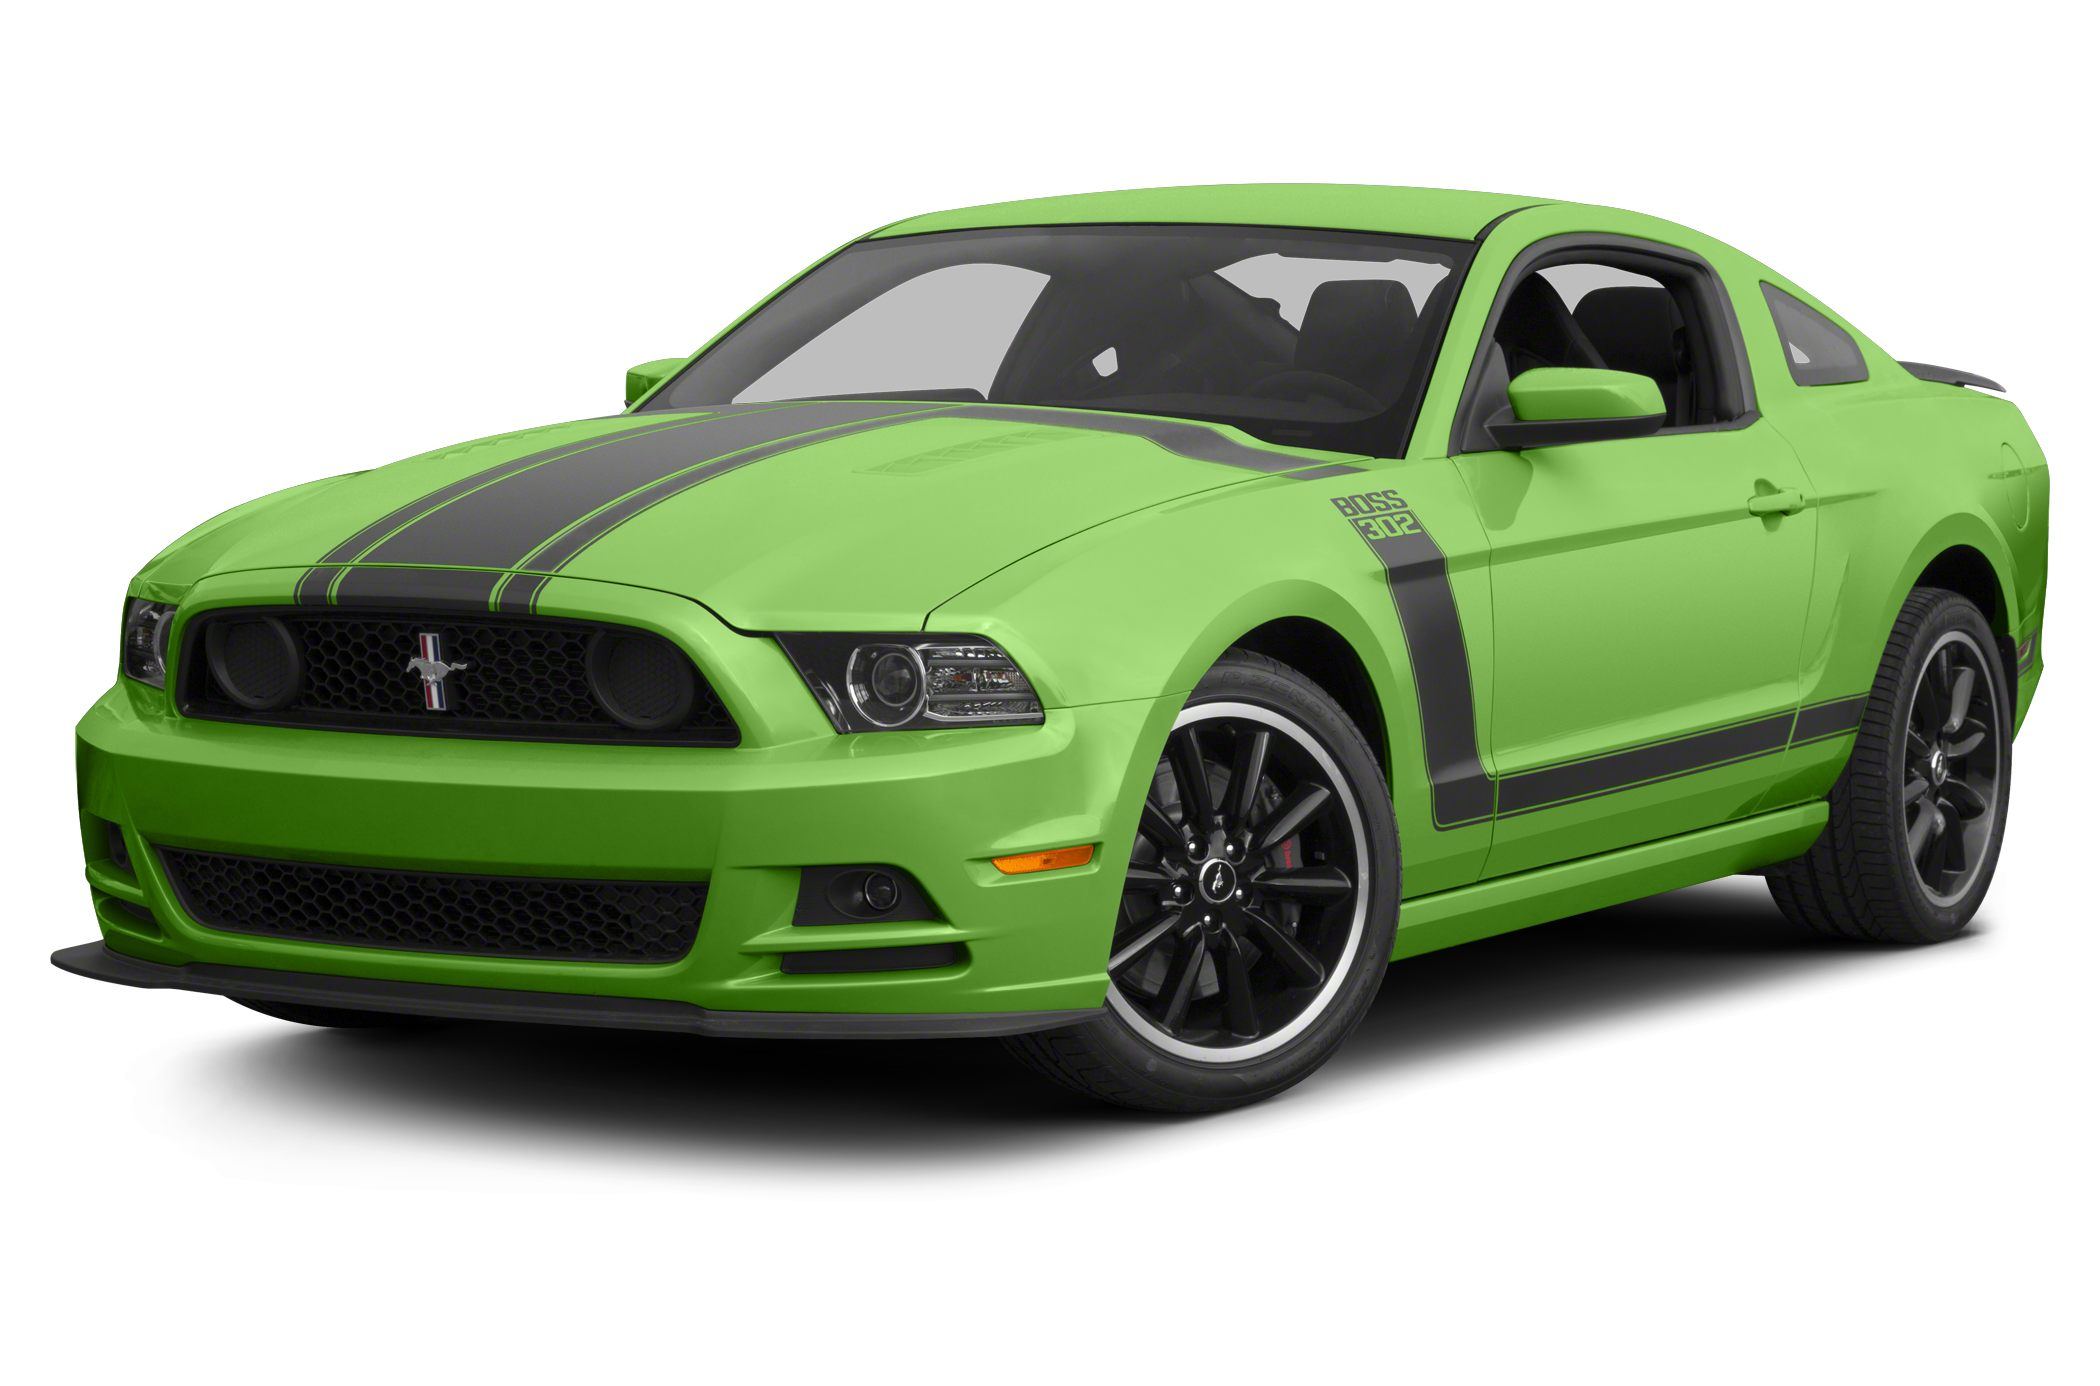 2013 Ford Mustang Boss 302 2dr Coupe